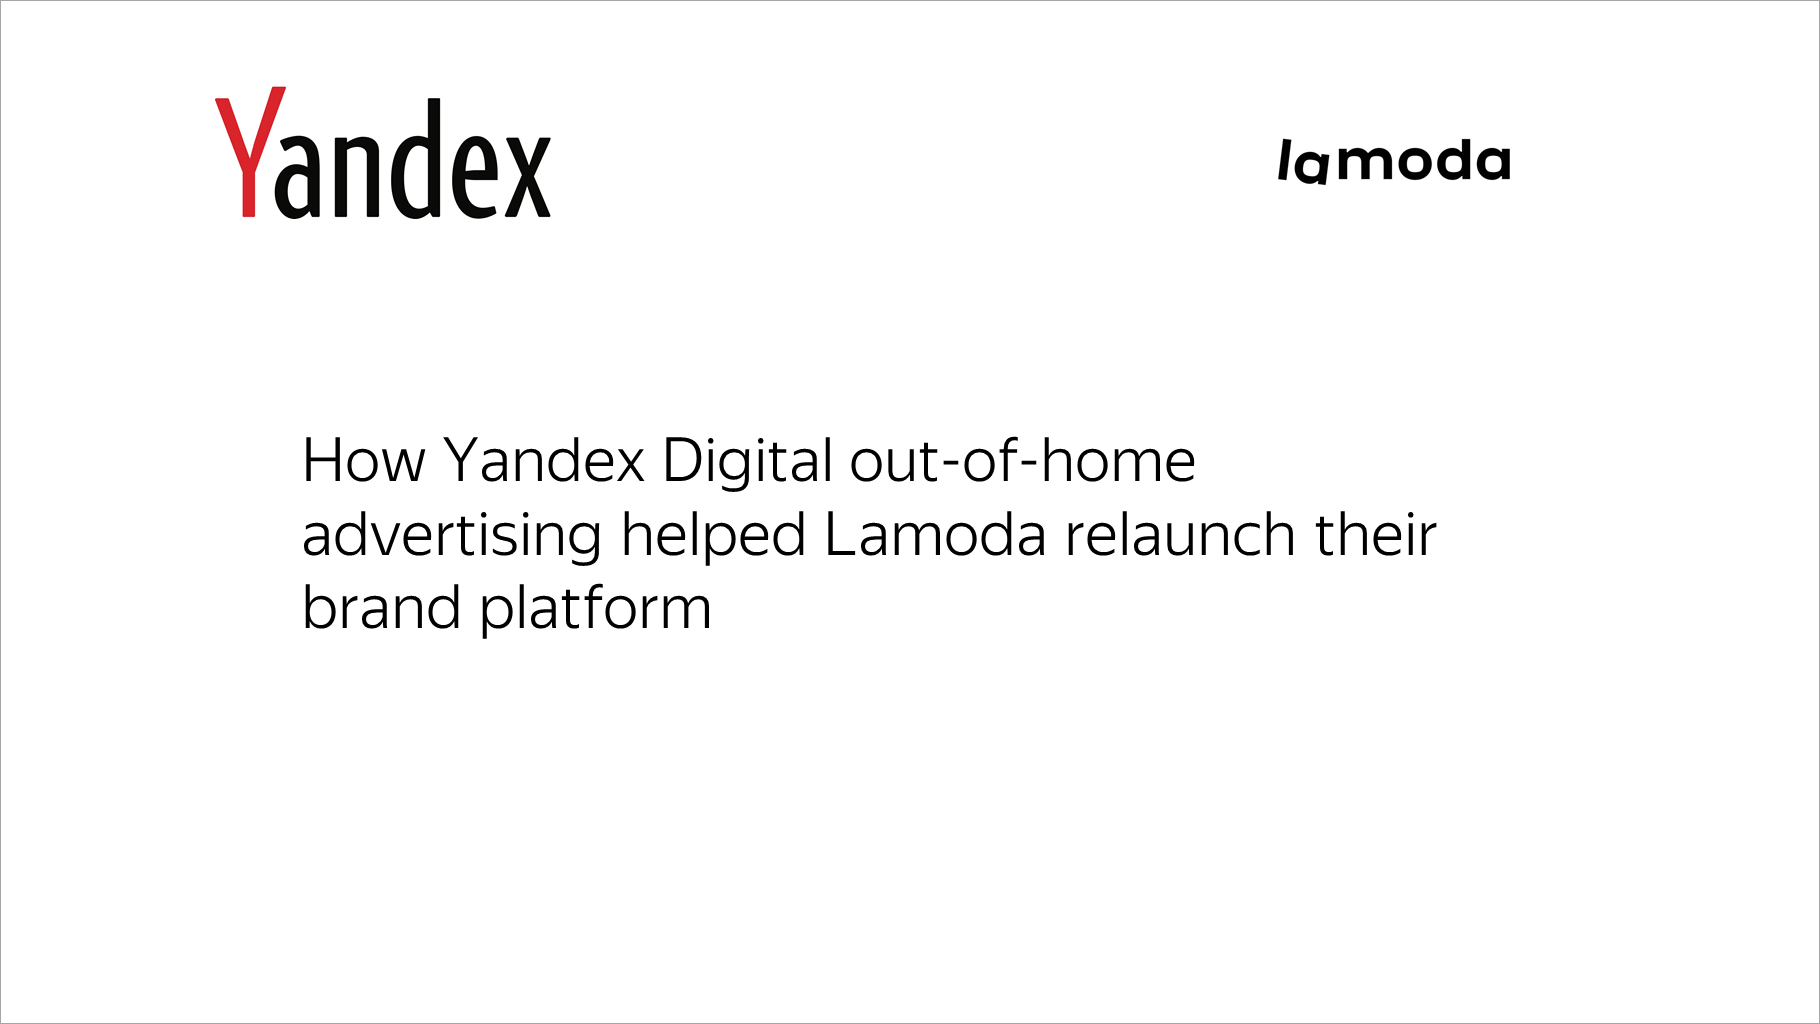 How Yandex Digital out-of-home advertising helped Lamoda relaunch their brand platform